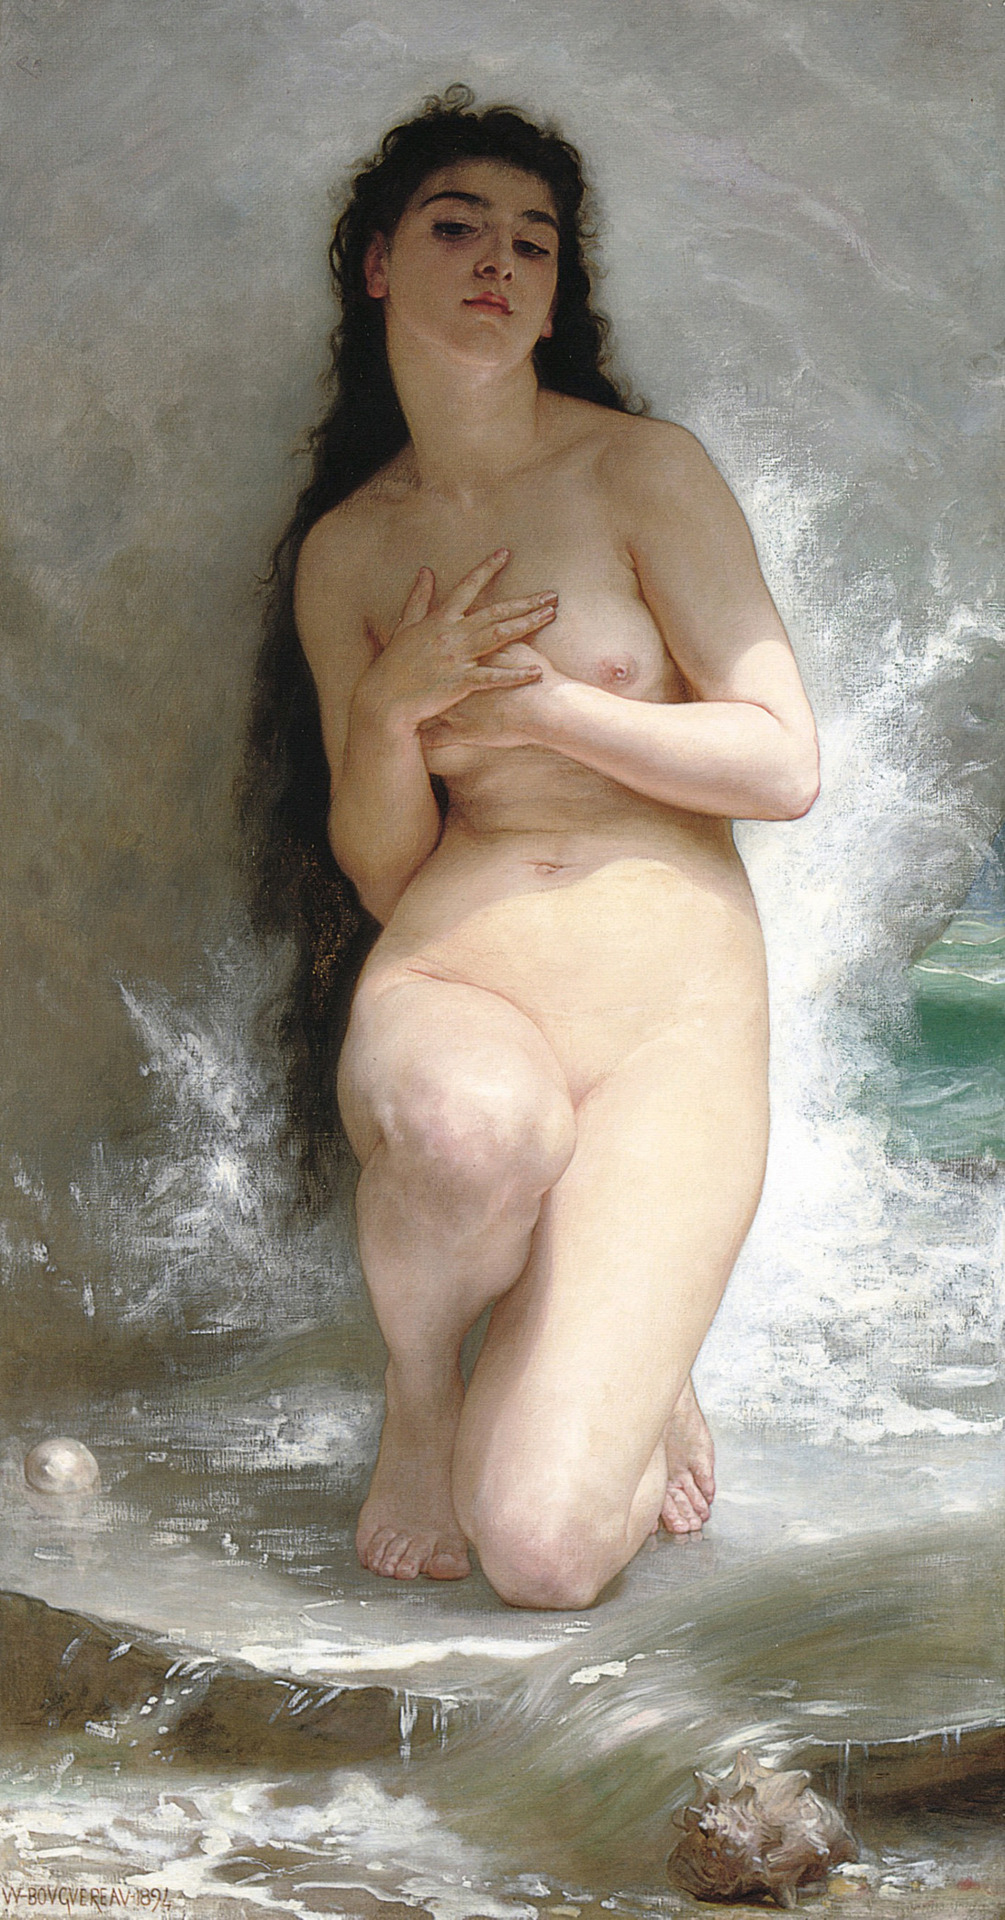 labellefilleart:  La perle, William Adolphe Bouguereau     Bouguereau painted the most beautiful bodies I've ever seen.